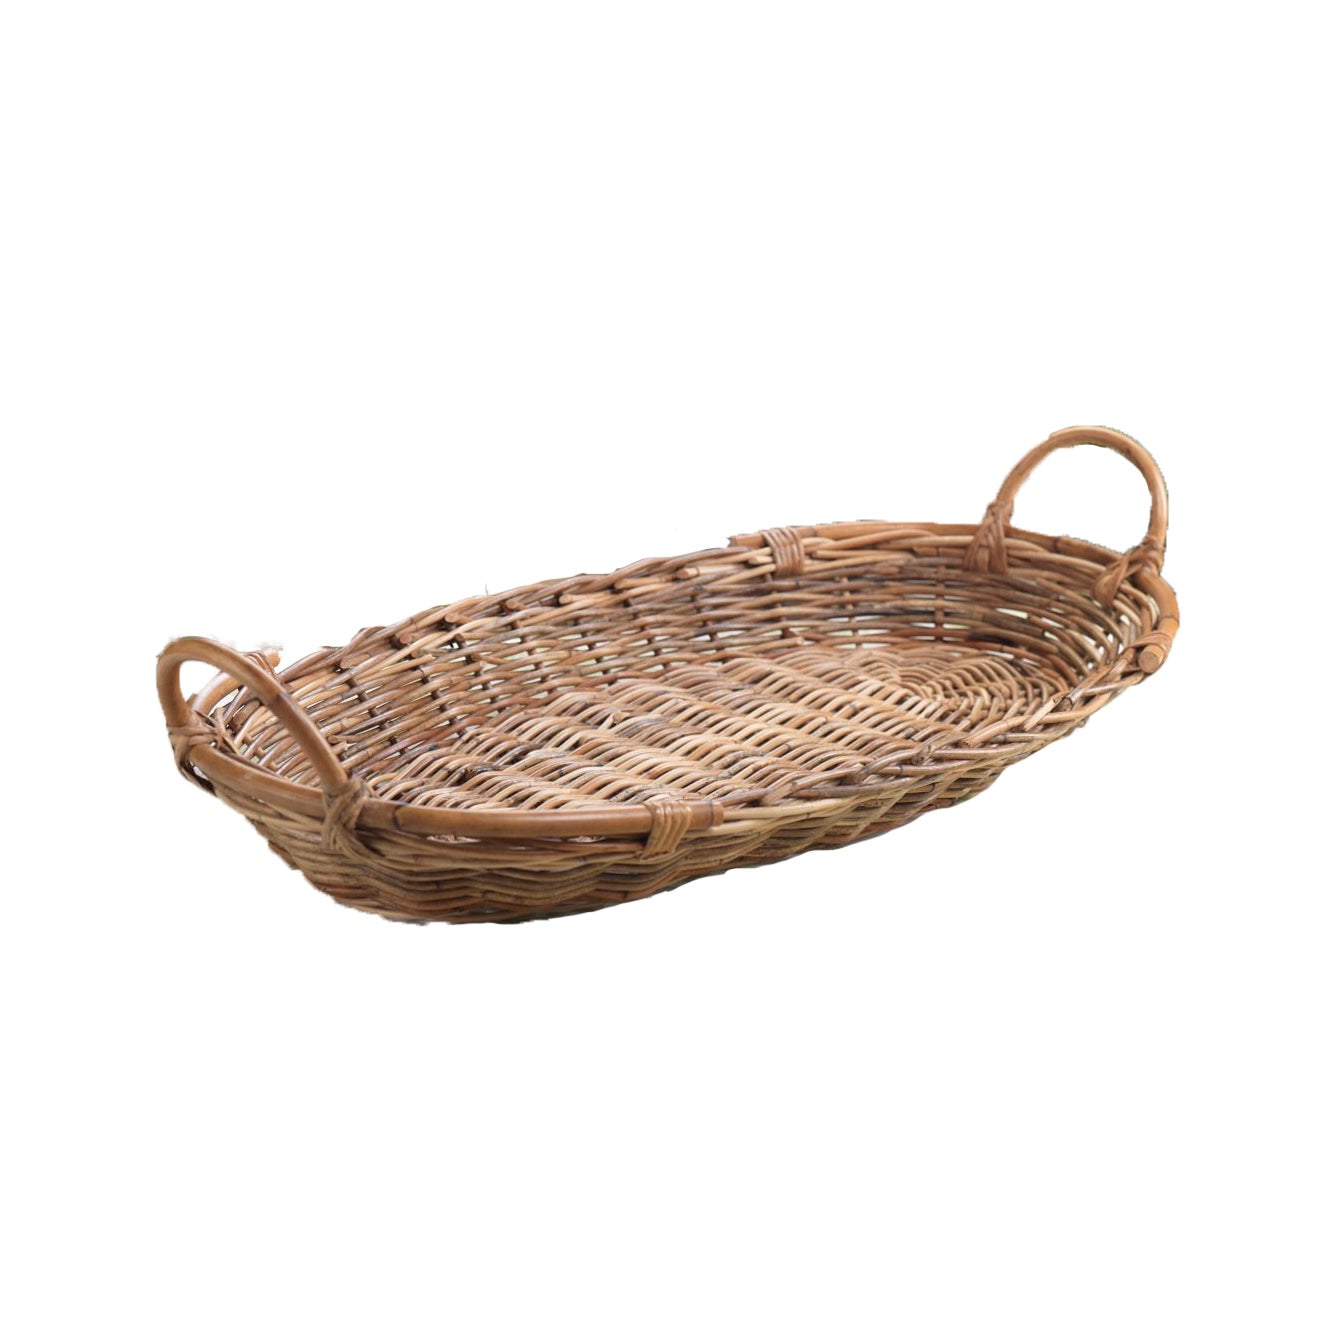 Rattan Oval Tray, ZX-Zodax, Putti Fine Furnishings